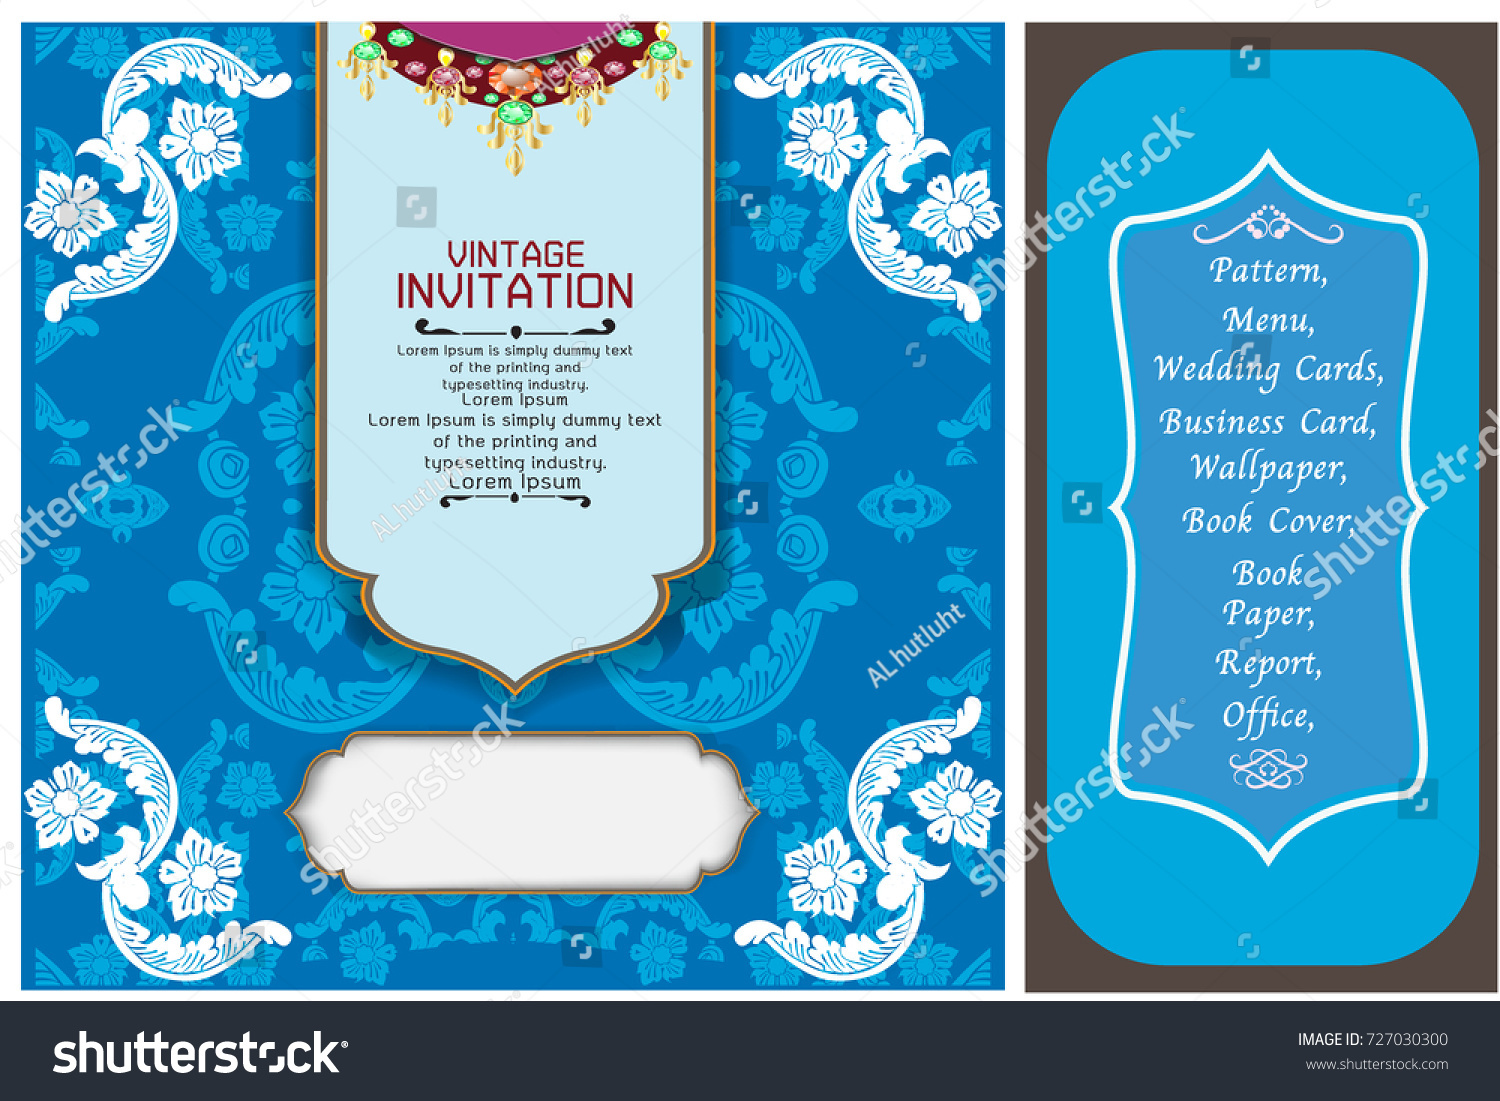 Wedding Invite Card Stock: Wedding Invitation Card Vintage Design Elements Stock